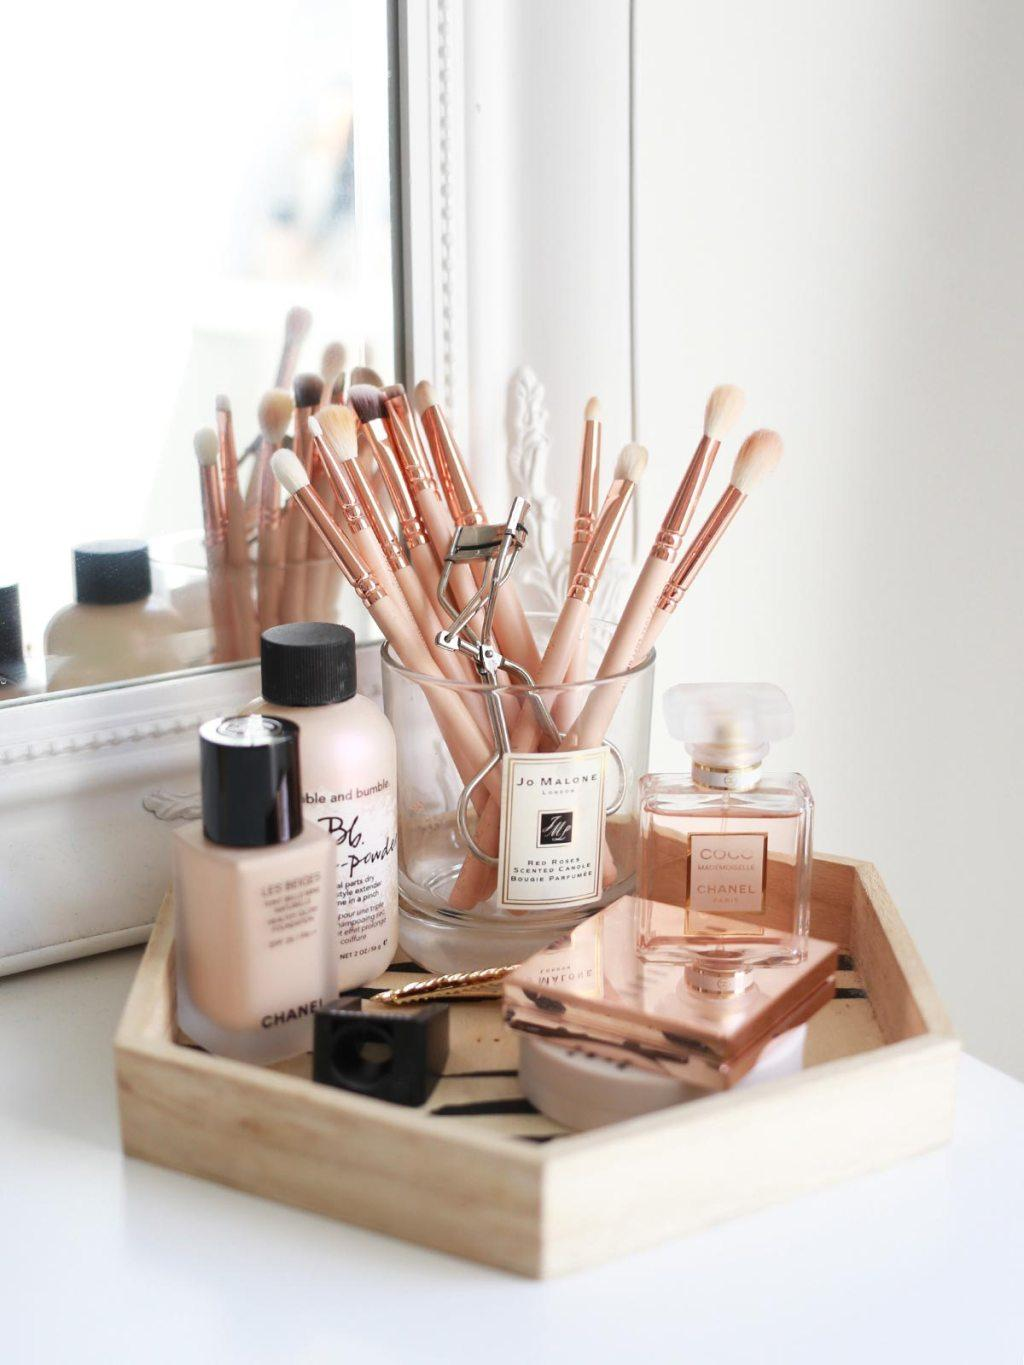 Makeup table: 60 ideas to decorate and organize 46